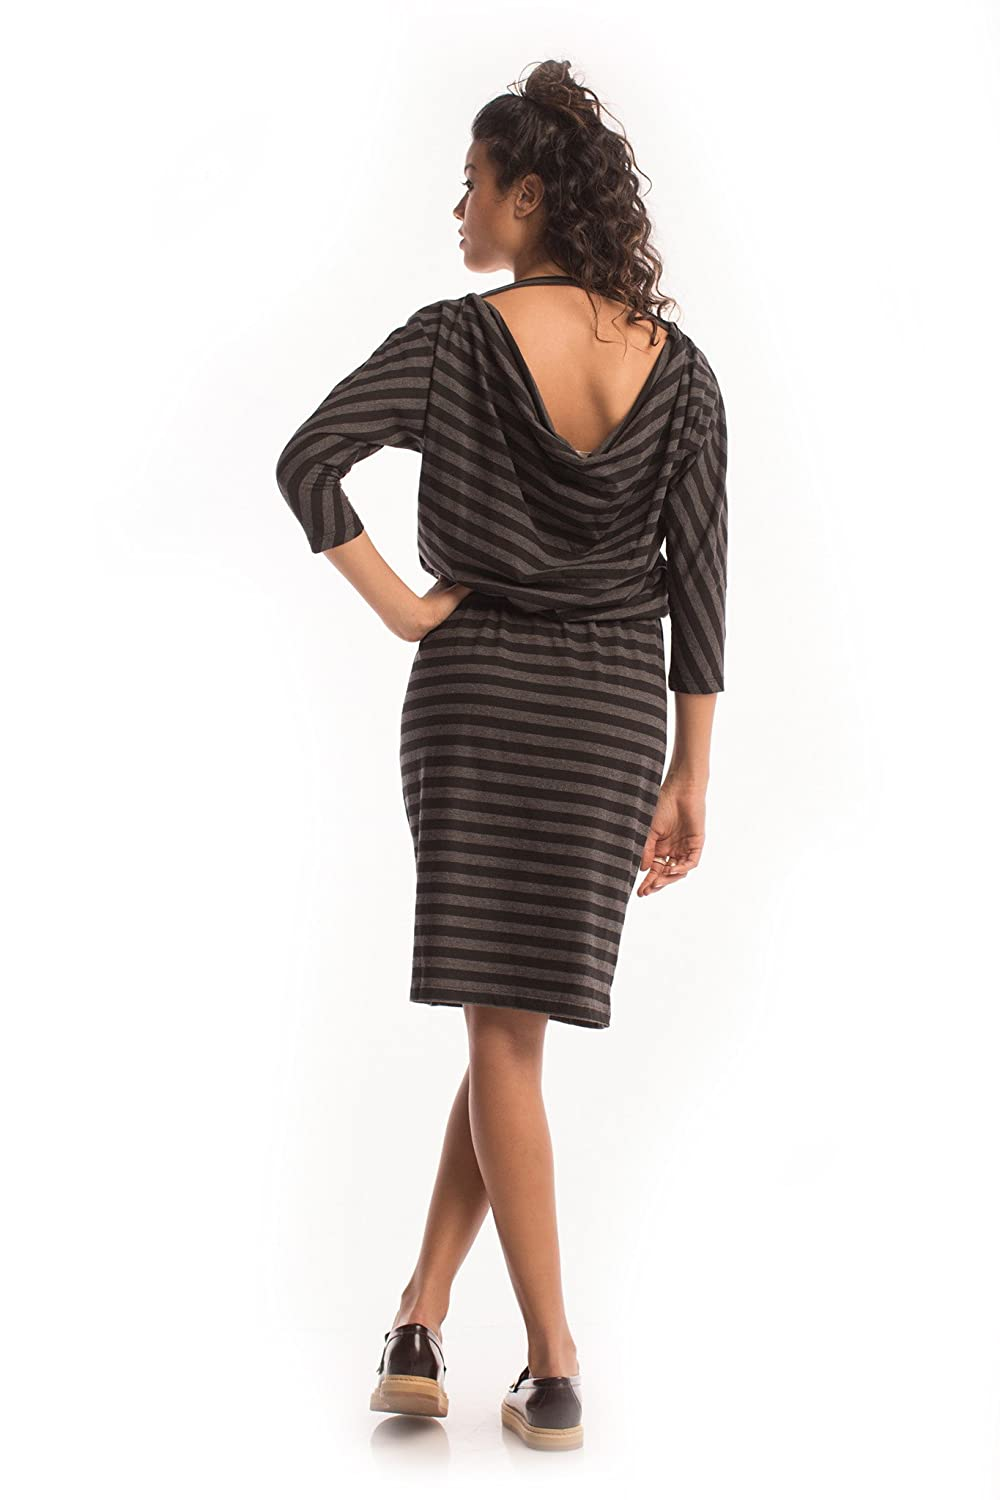 Heathered Gallery Dress in Black - Synergy Organic Clothing